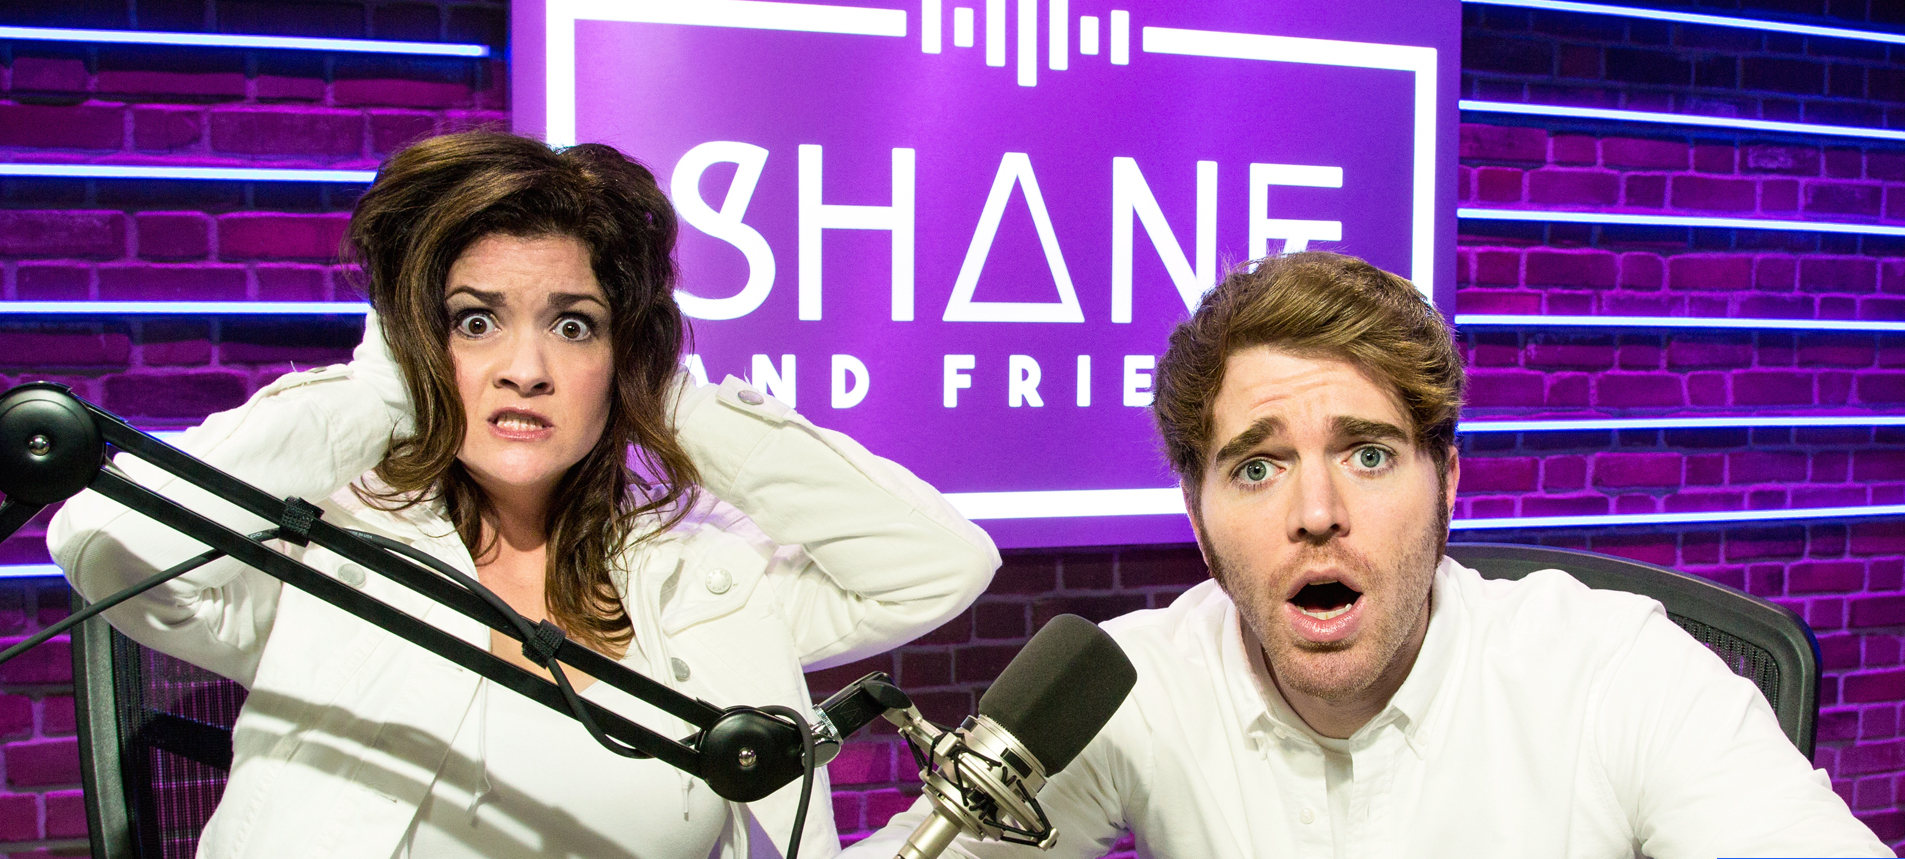 Shane and friends show